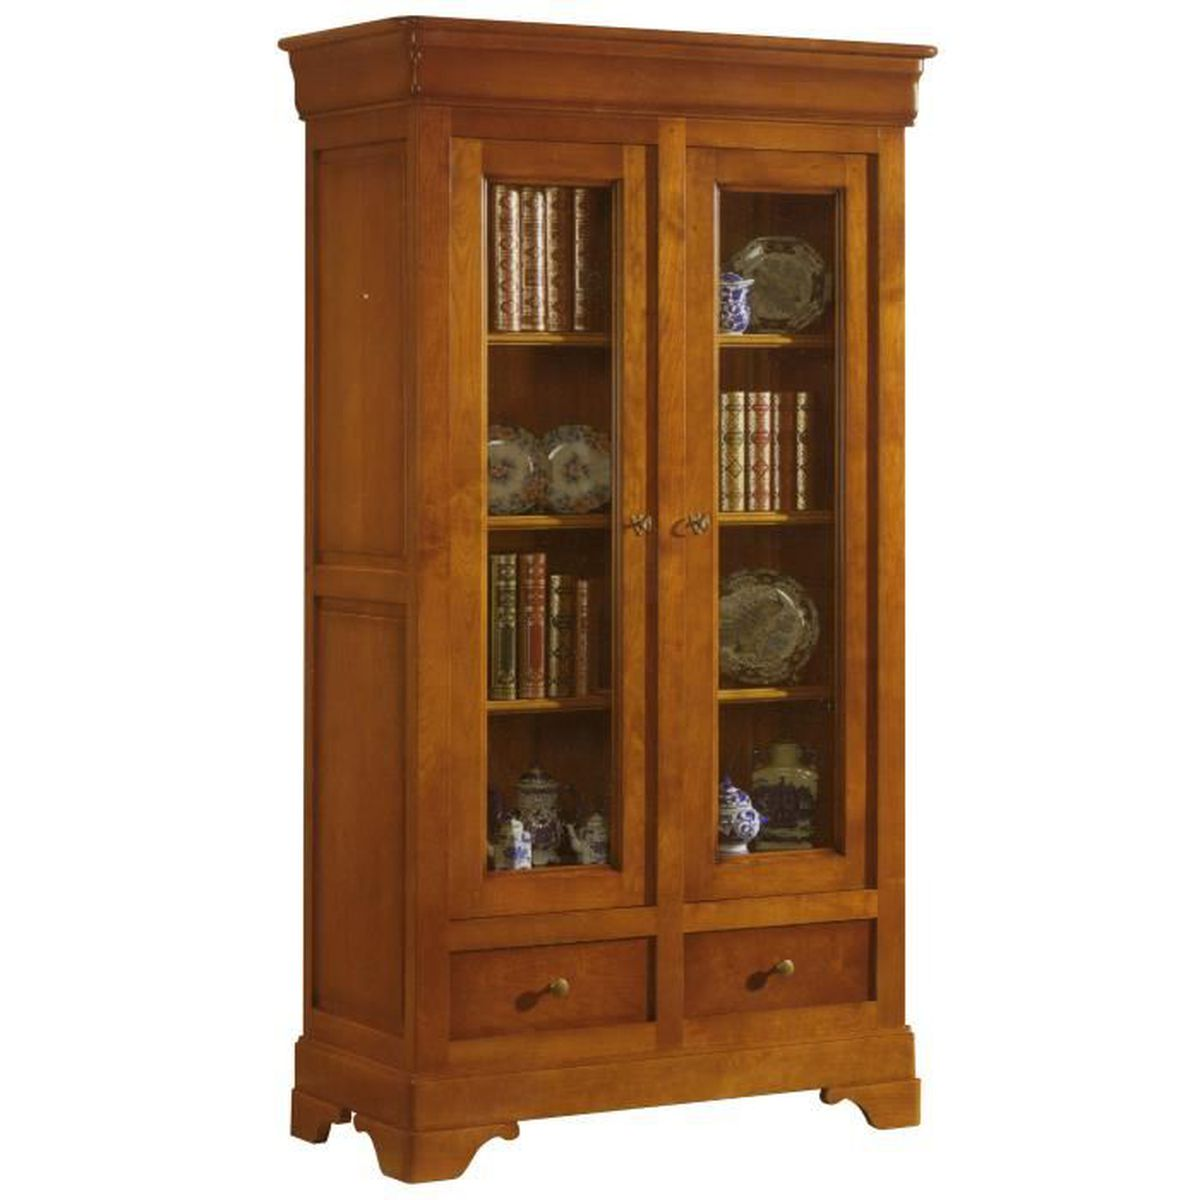 biblioth que 2 portes vitr es 2 tiroirs en ch ne massif achat vente biblioth que. Black Bedroom Furniture Sets. Home Design Ideas